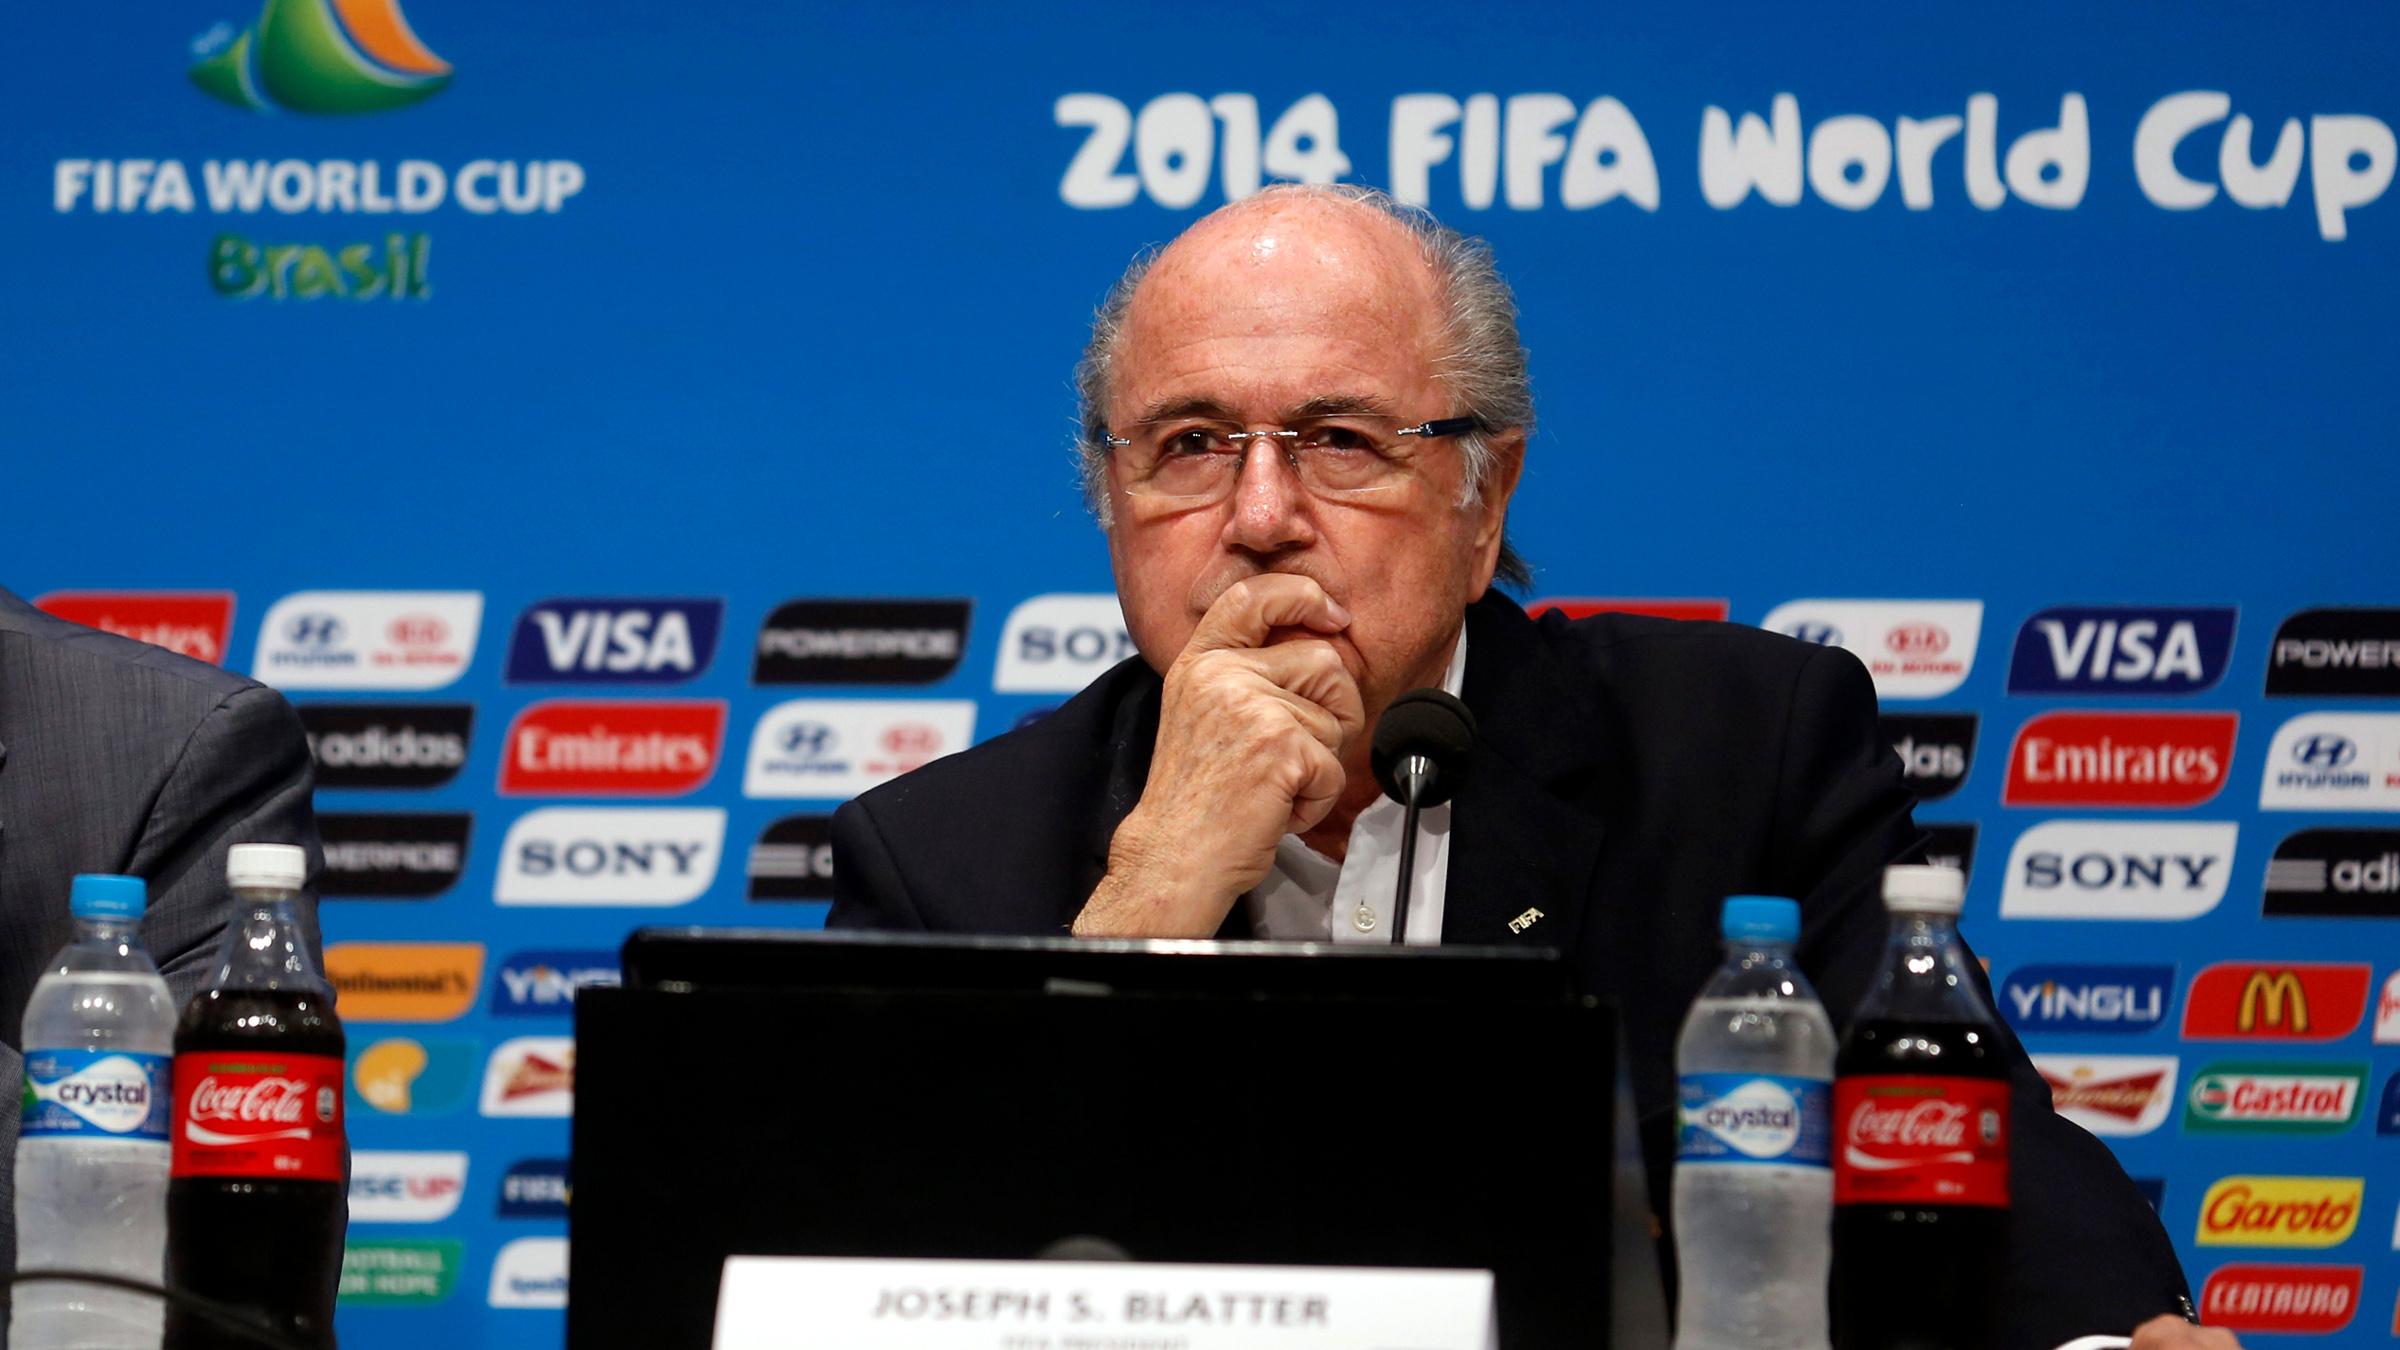 FIFA President Sepp Blatter (R) and Secretary General Jerome Valcke attend a news conference at the Maracana stadium in Rio de Janeiro July 14, 2014. Blatter gave the World Cup in Brazil 9.25 marks out of 10 on Monday, the day after the tournament ended with Germany beating Argentina 1-0 after extra time in the final.